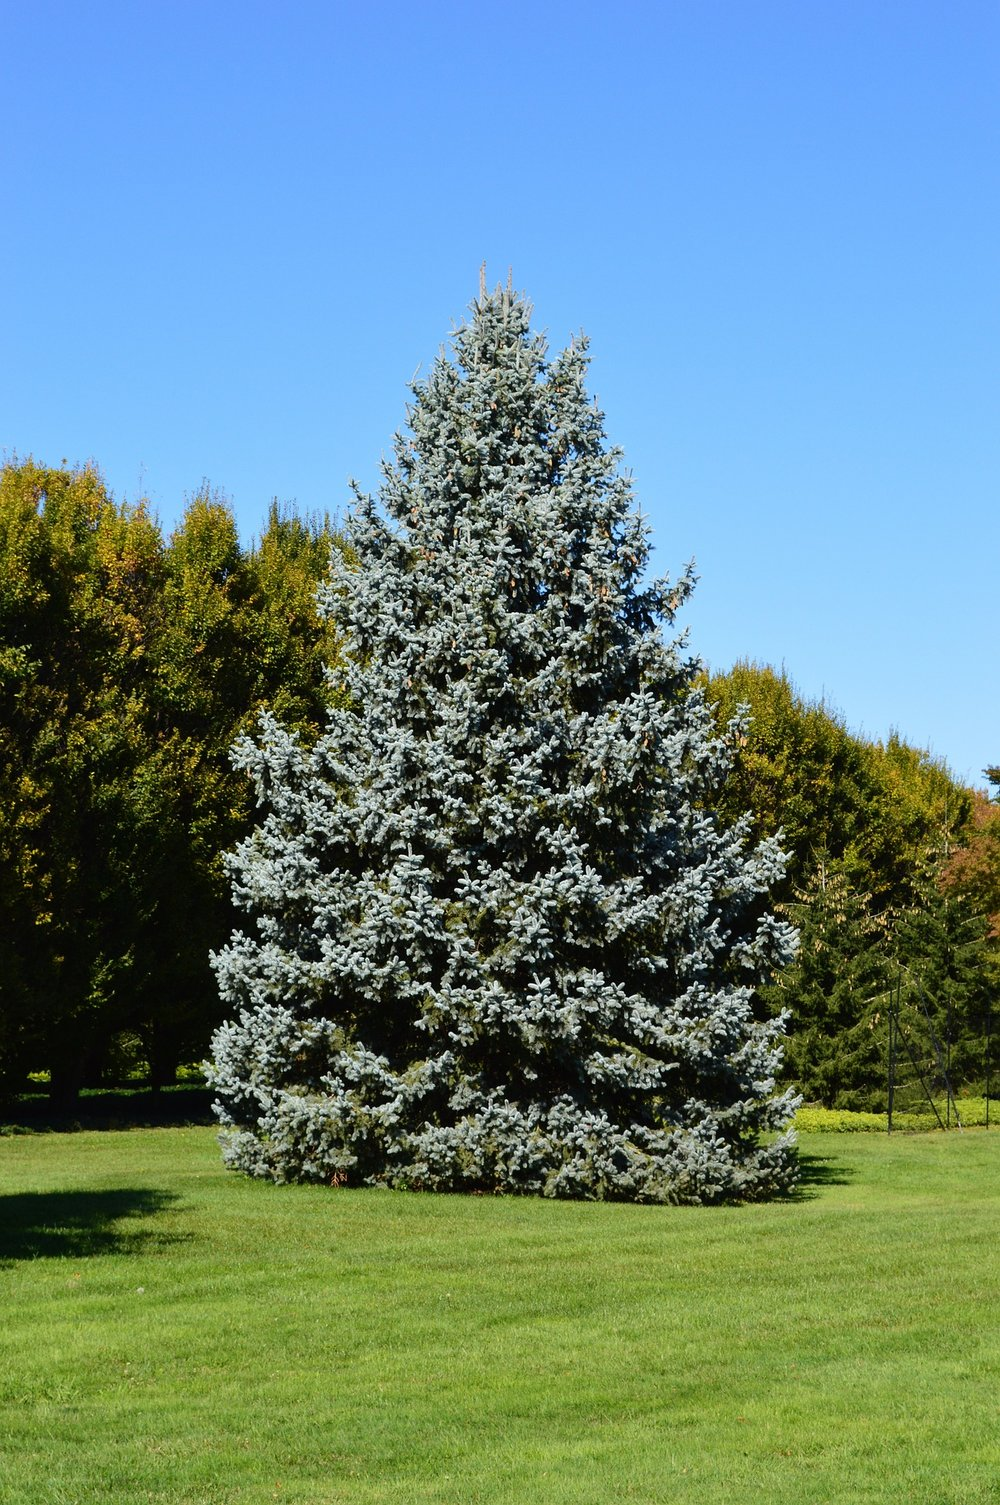 Spruces - Sometimes, one tree is enough. You don't need a row or a hedge, just a well-placed large tree to obscure an eyesore from either direction. Spruces fit nicely into that category.Zone: 2-8Size: 40'-60' x 10'-20' (Norway),10'-15 x 10'-15' (smaller blue spruces)Cultivars Suggested: 'Fat Albert', 'Baby Blue Eyes', Norway, OrientalCulture: Full sun, does not like wet feet, good wind screenGrowth rate:SlowPests and Diseases: Needle cast, canker, bagworms*Colorado Blue Spruce pictured